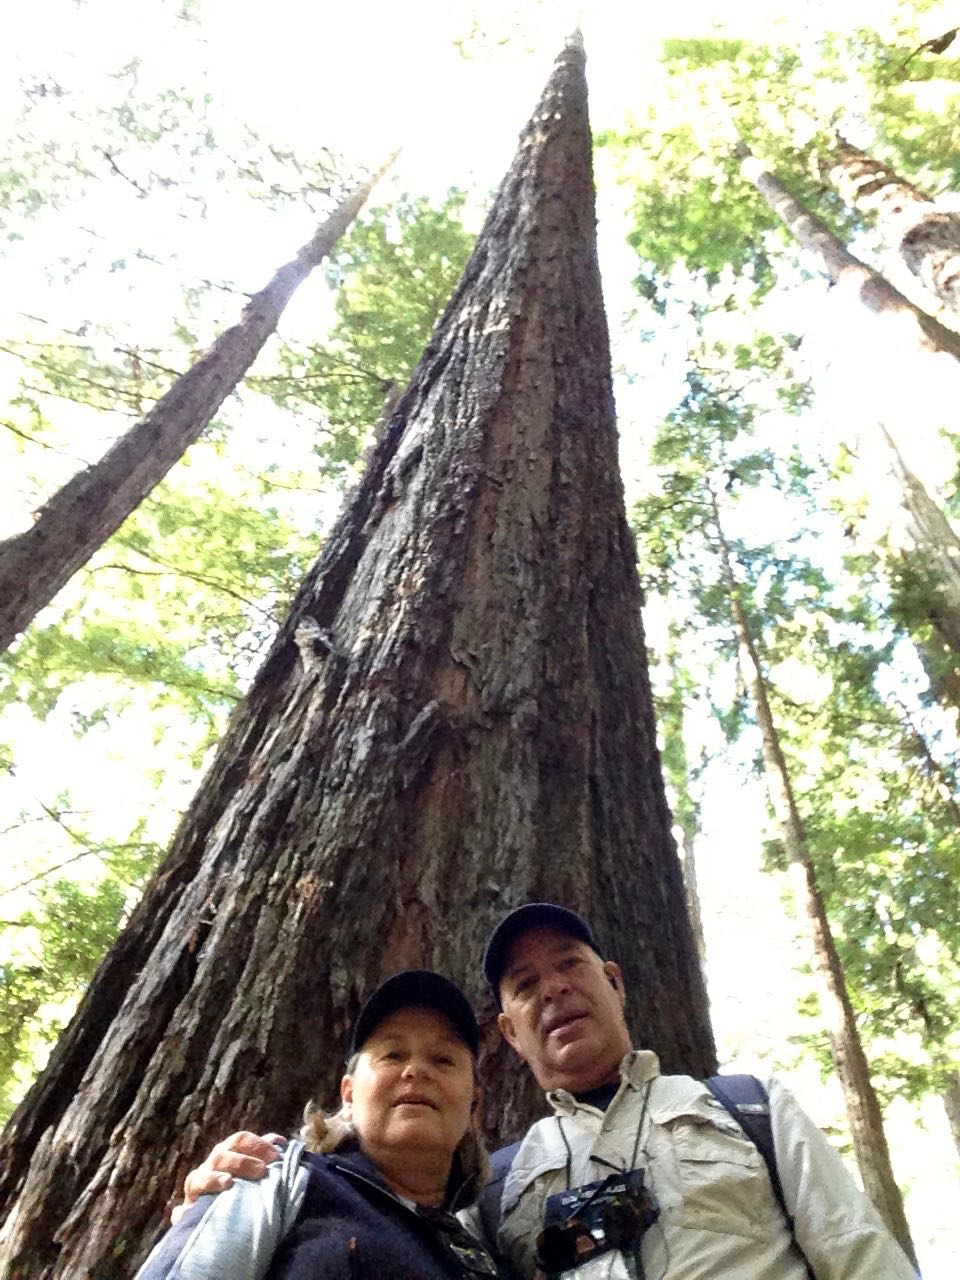 Redwoods 2017 10 08 215 Of 287